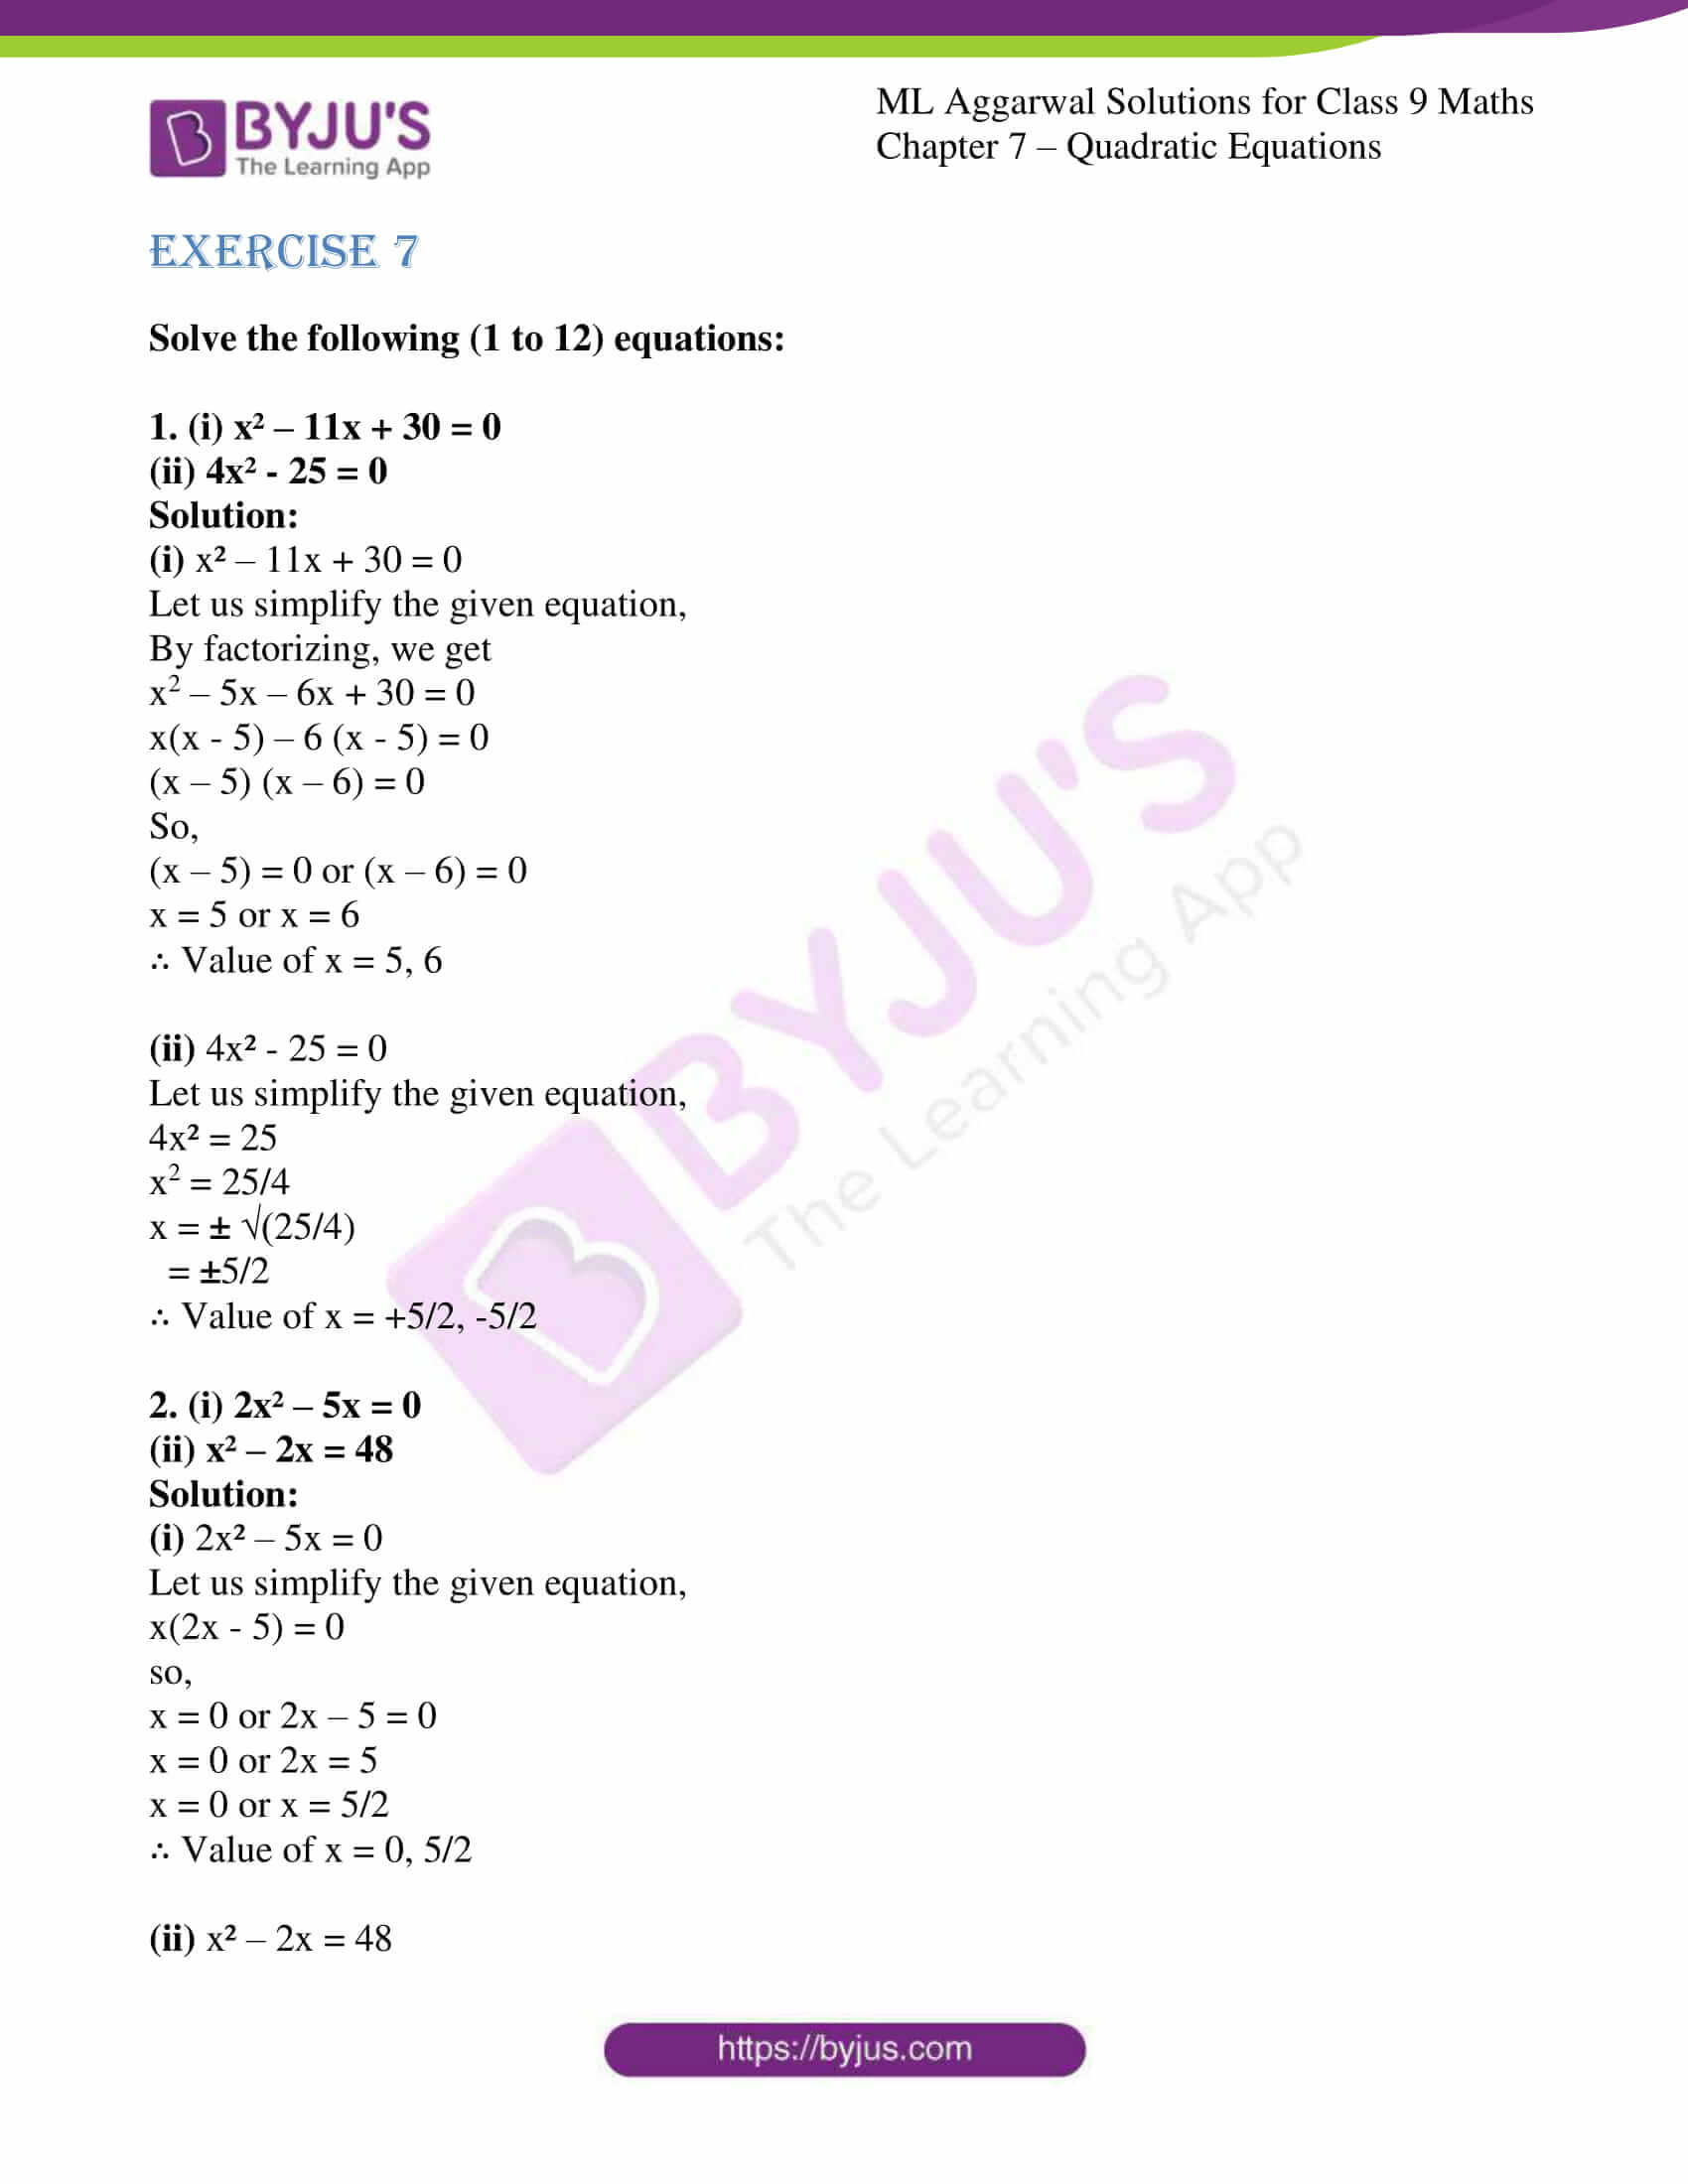 ml aggarwal solutions for class 9 maths chapter 7 01